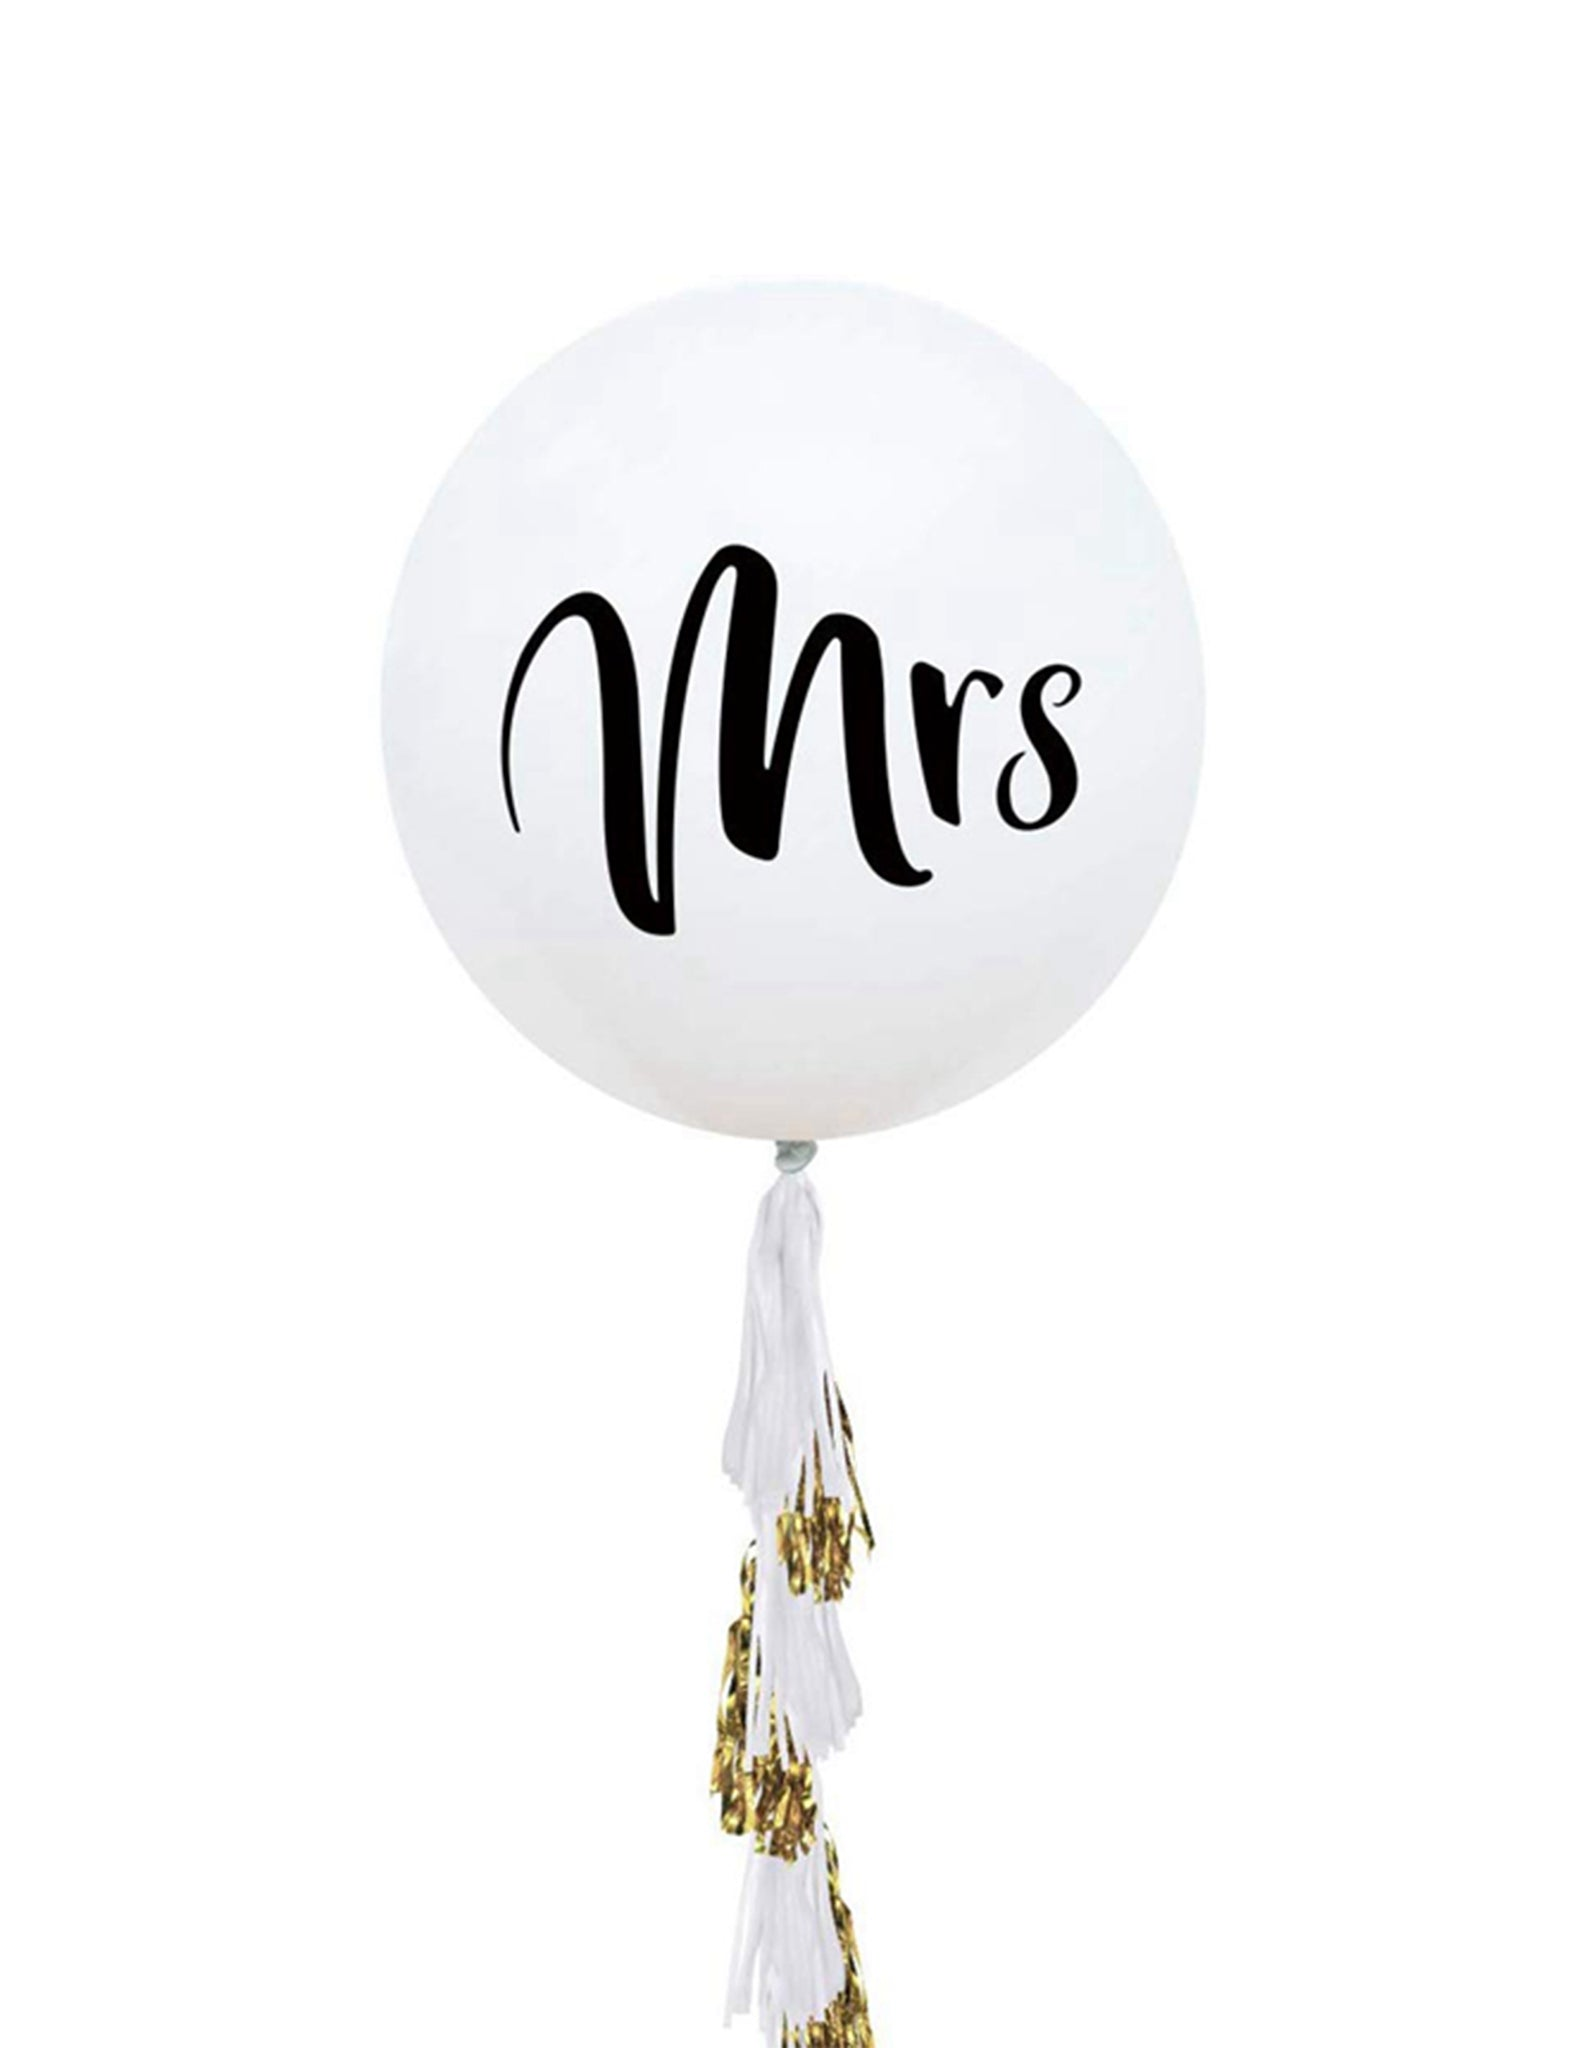 mrs latex balloon big size for sale online in Dubai